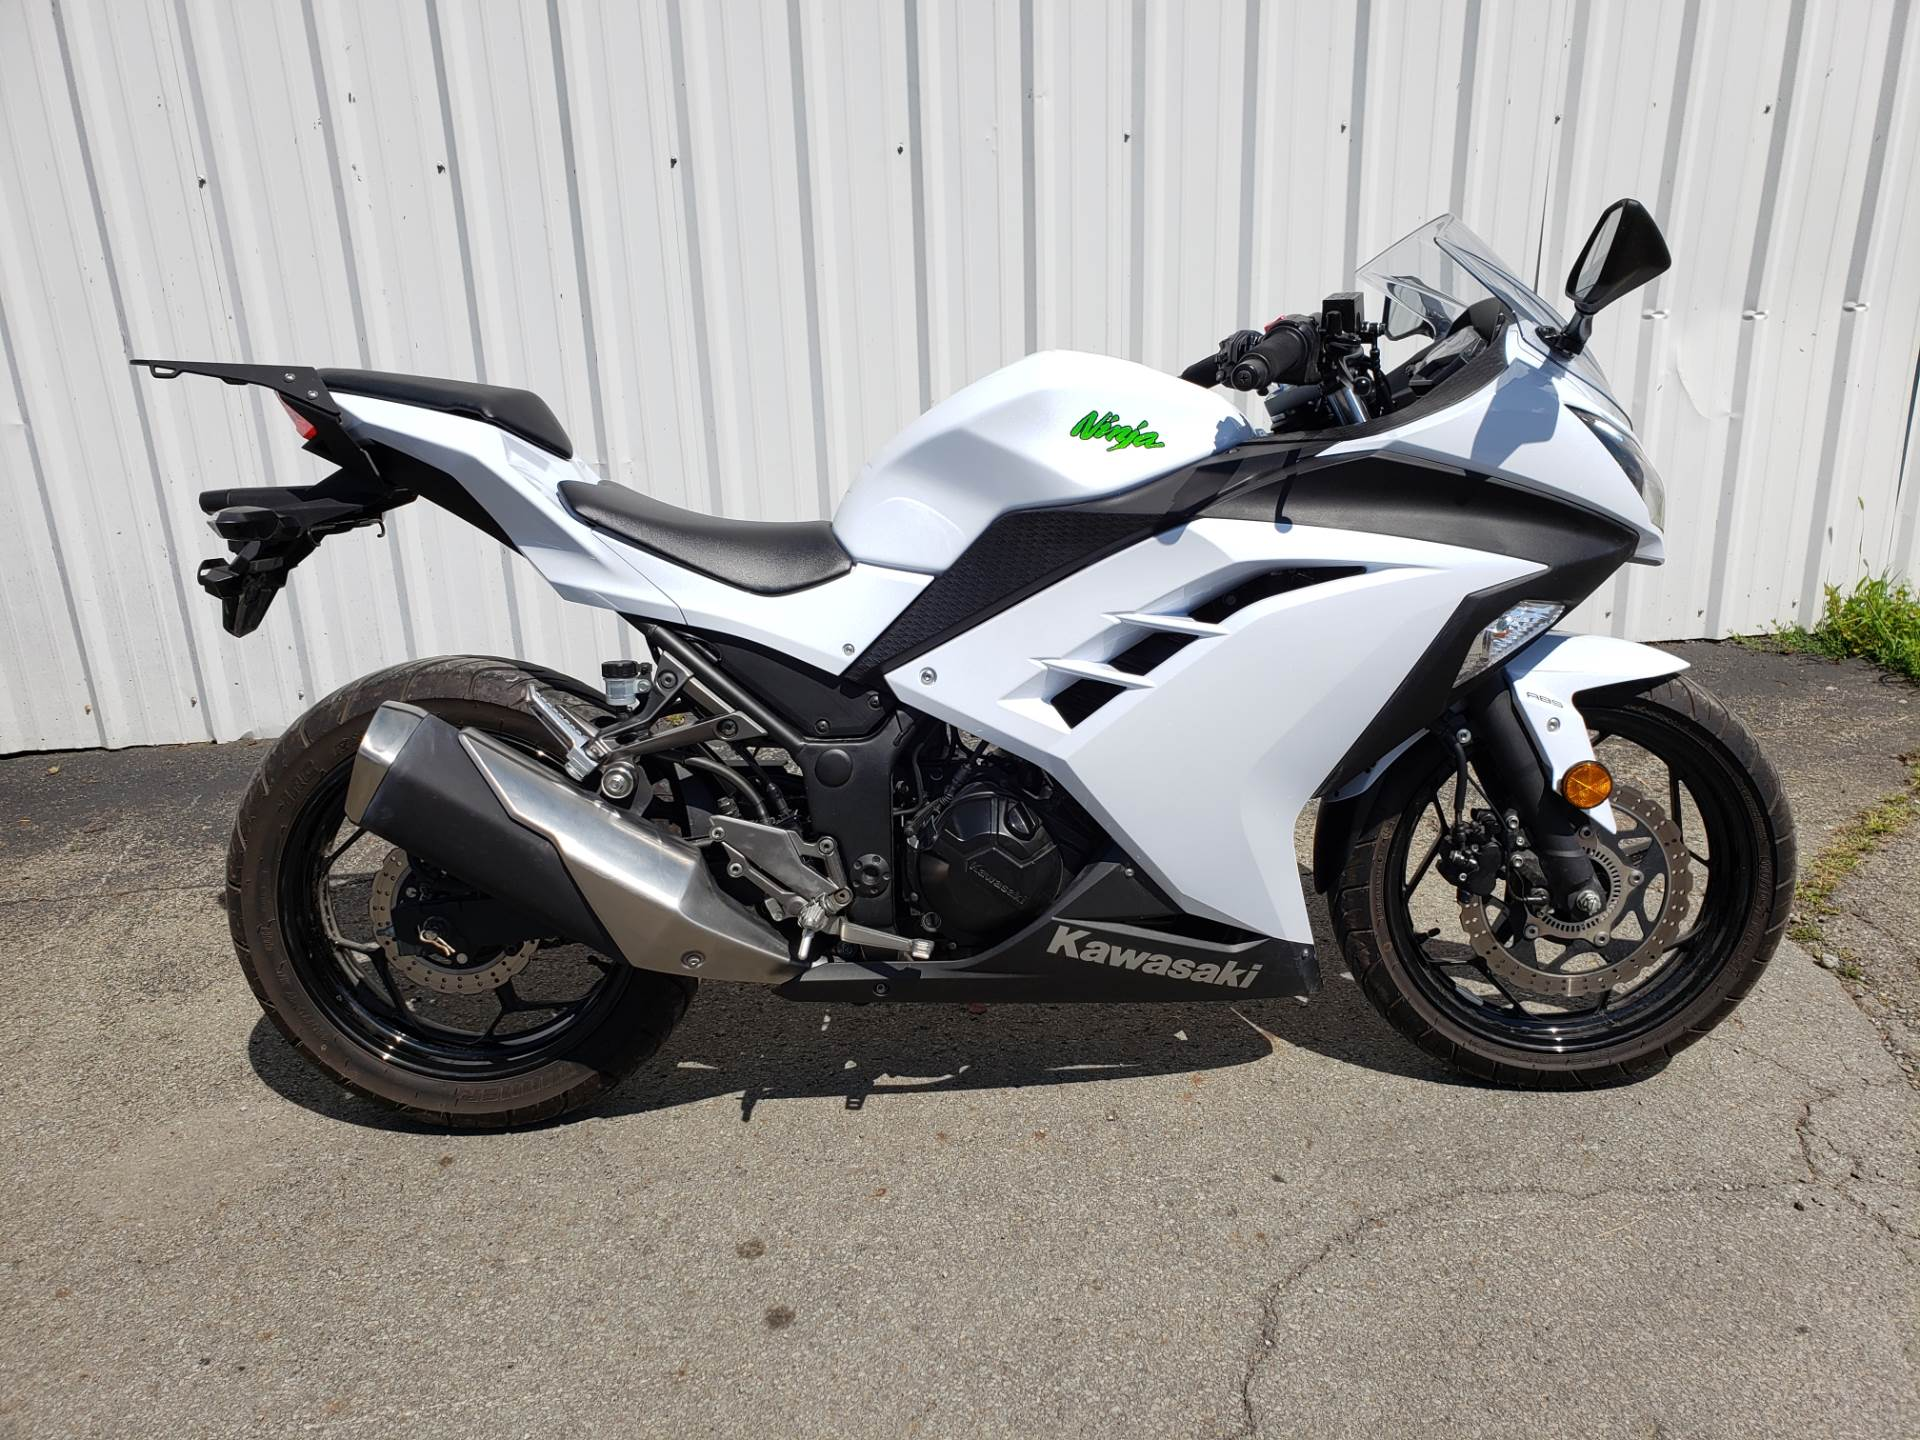 2015 Kawasaki Ninja 300 Abs In Walton New York